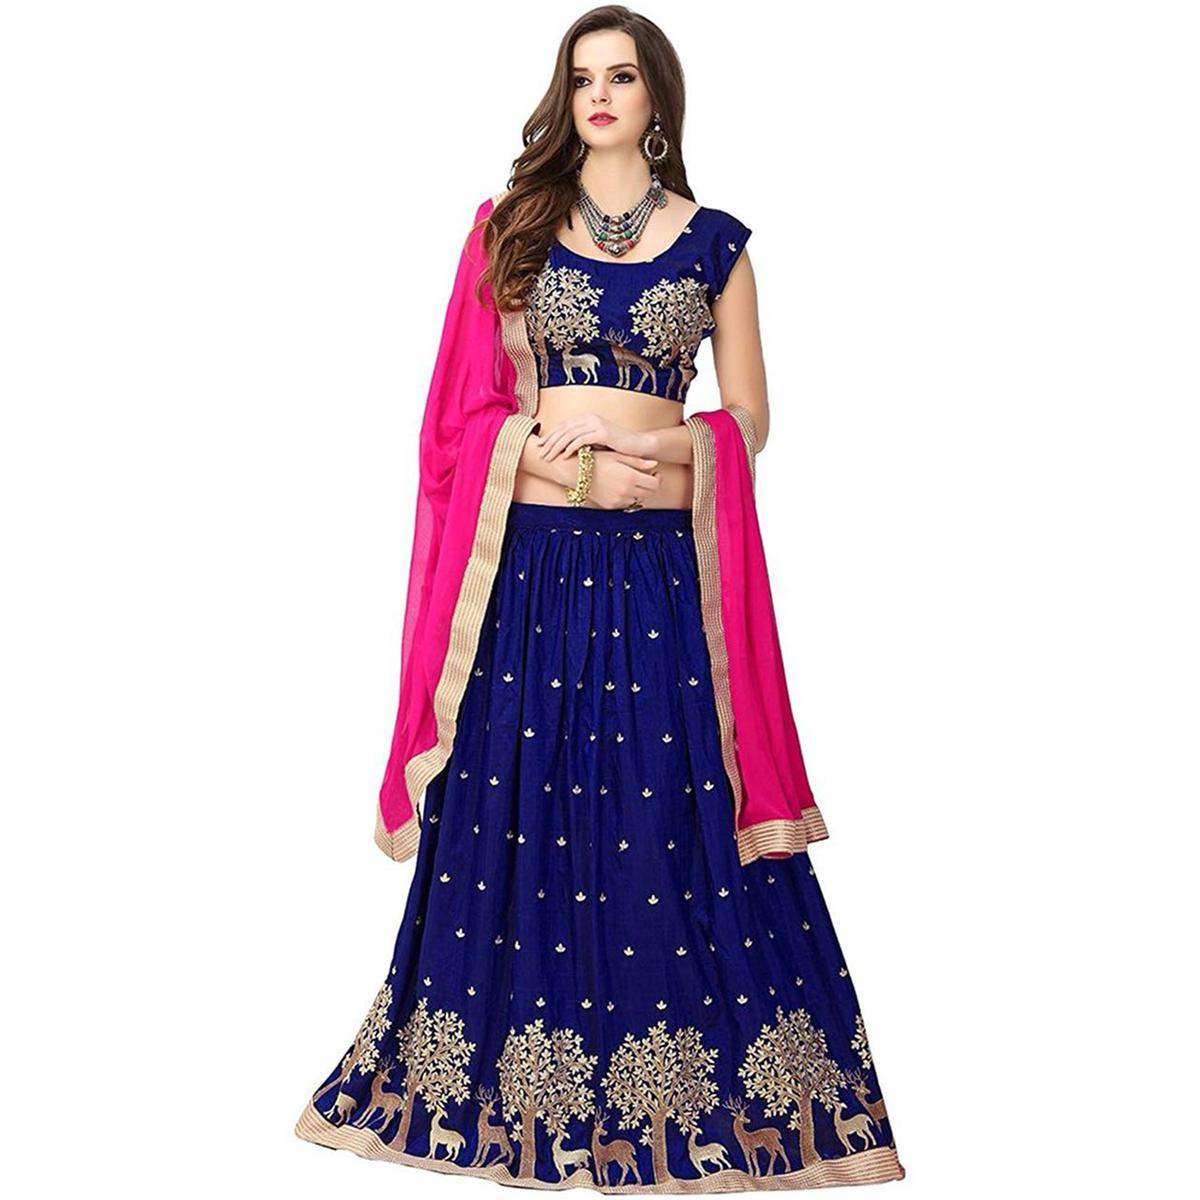 Ravishing Blue Colored Designer Embroidered Banglori Silk Lehenga Choli